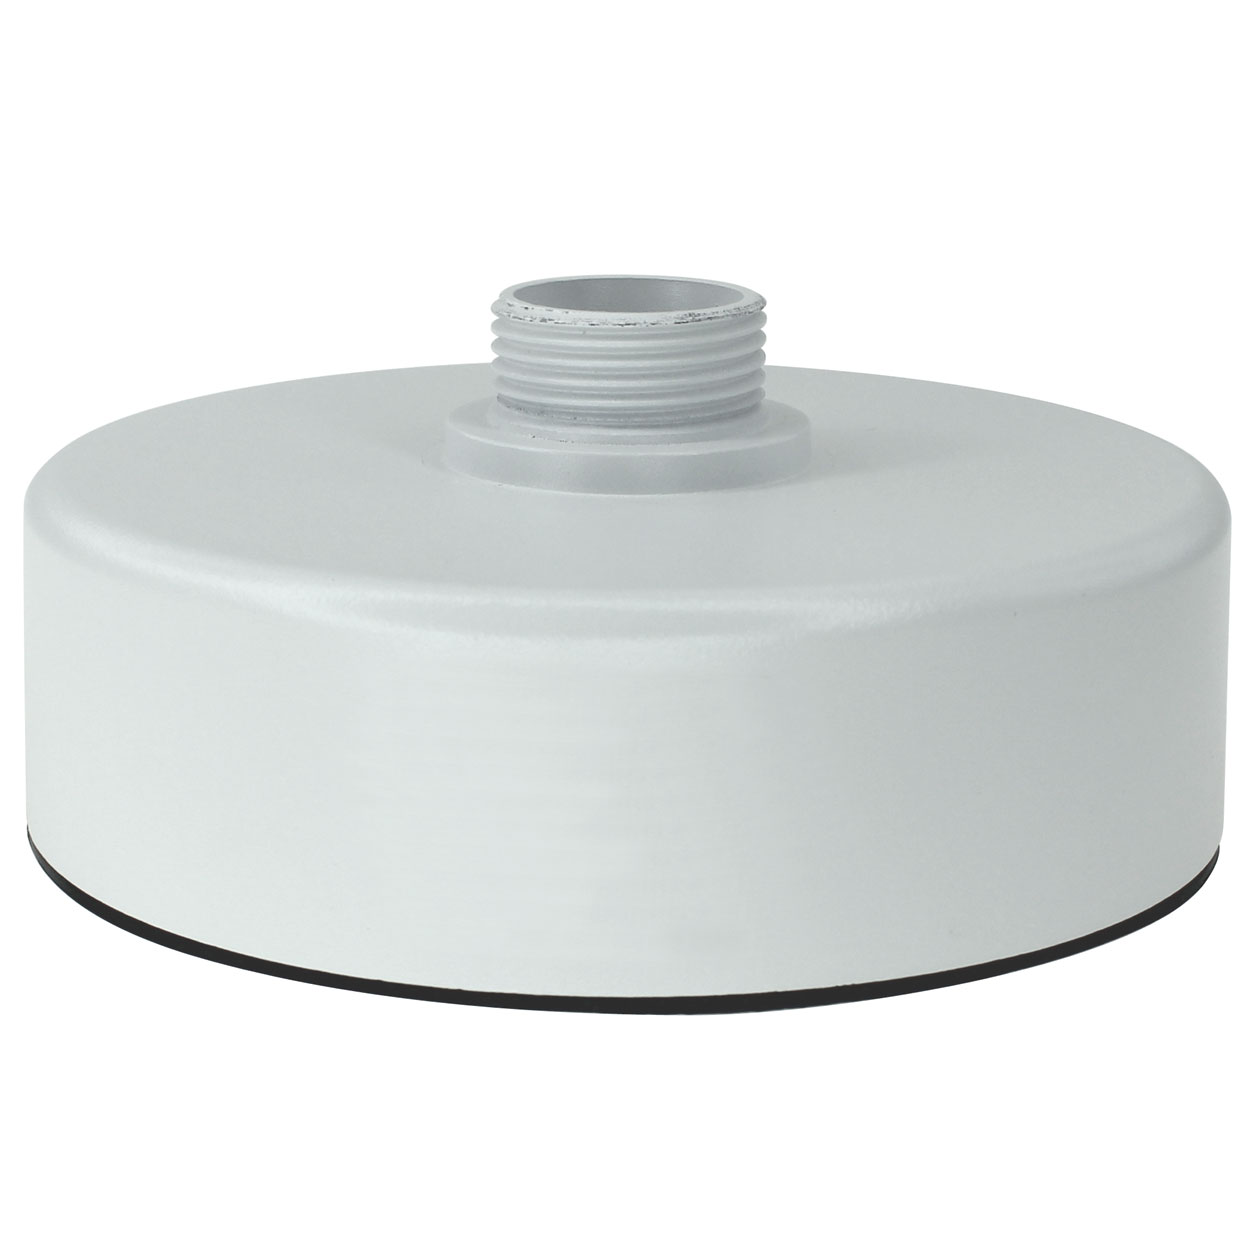 Junction Box with Conduit Hole for Vandal Proof Dome Cameras, 5.8 x 2.6 inches - White